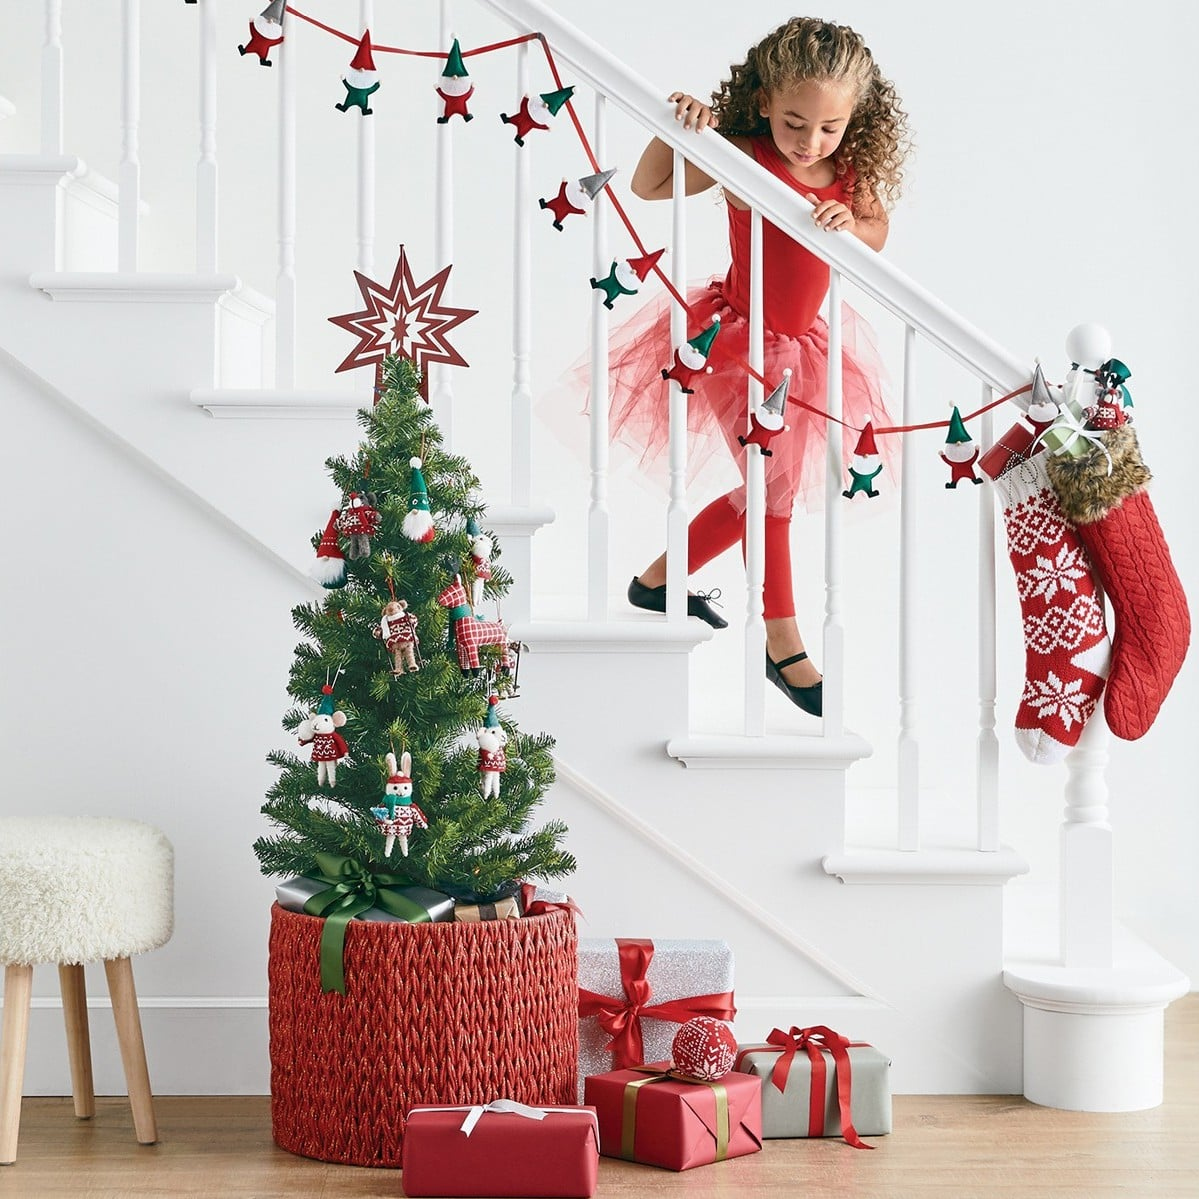 Best Target Christmas Decorations 2018 | POPSUGAR Family